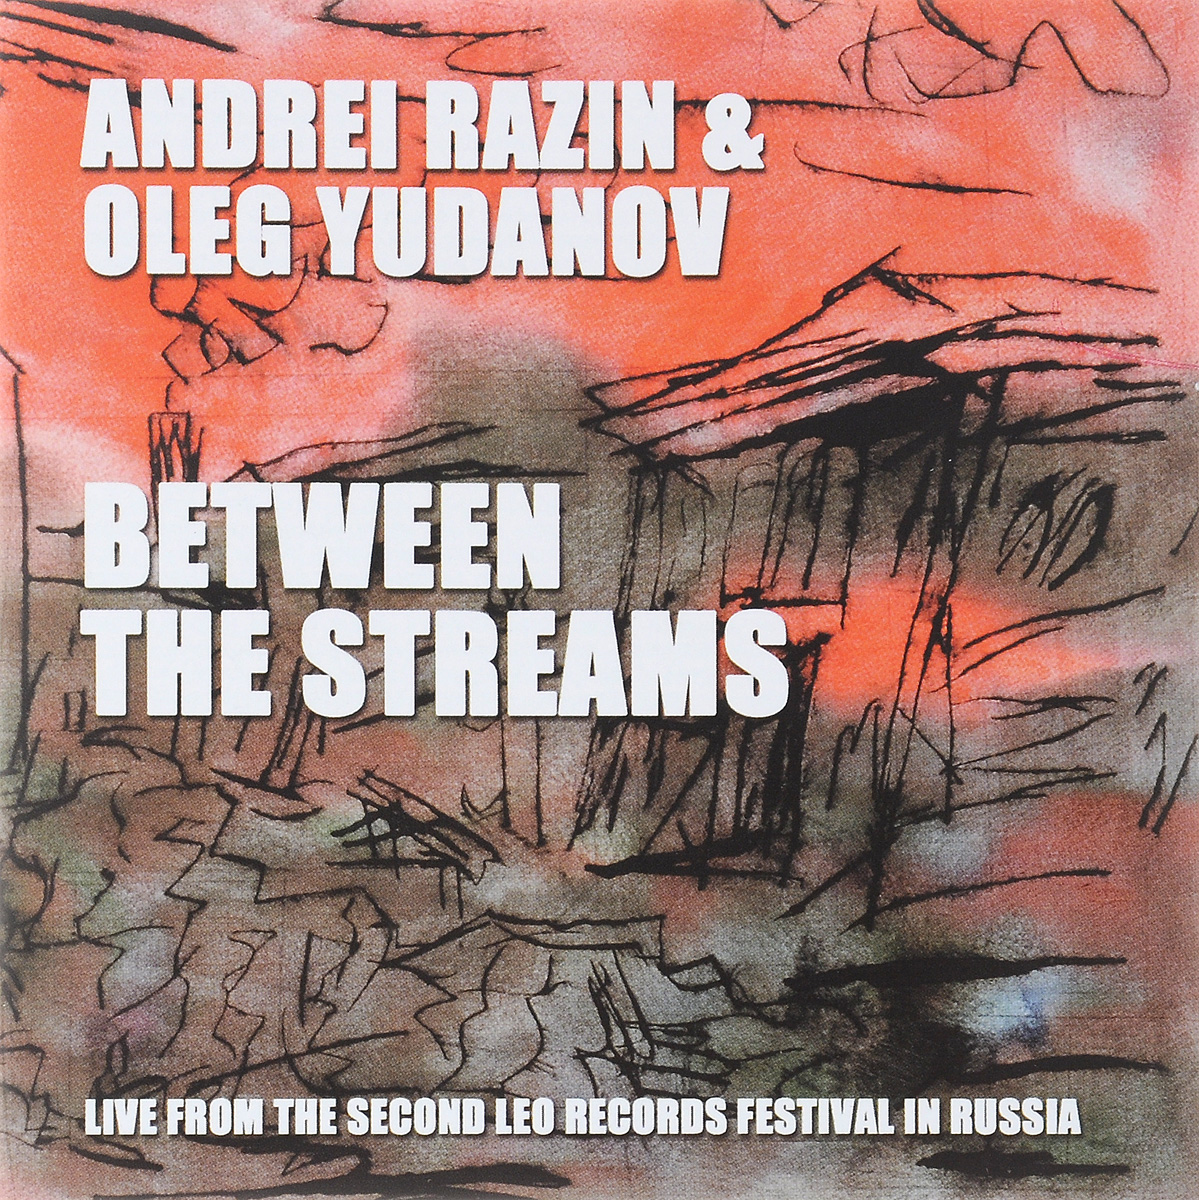 Андрей Разин,Олег Юданов Andrei Razin & Oleg Yudanov. Betwenn The Streams